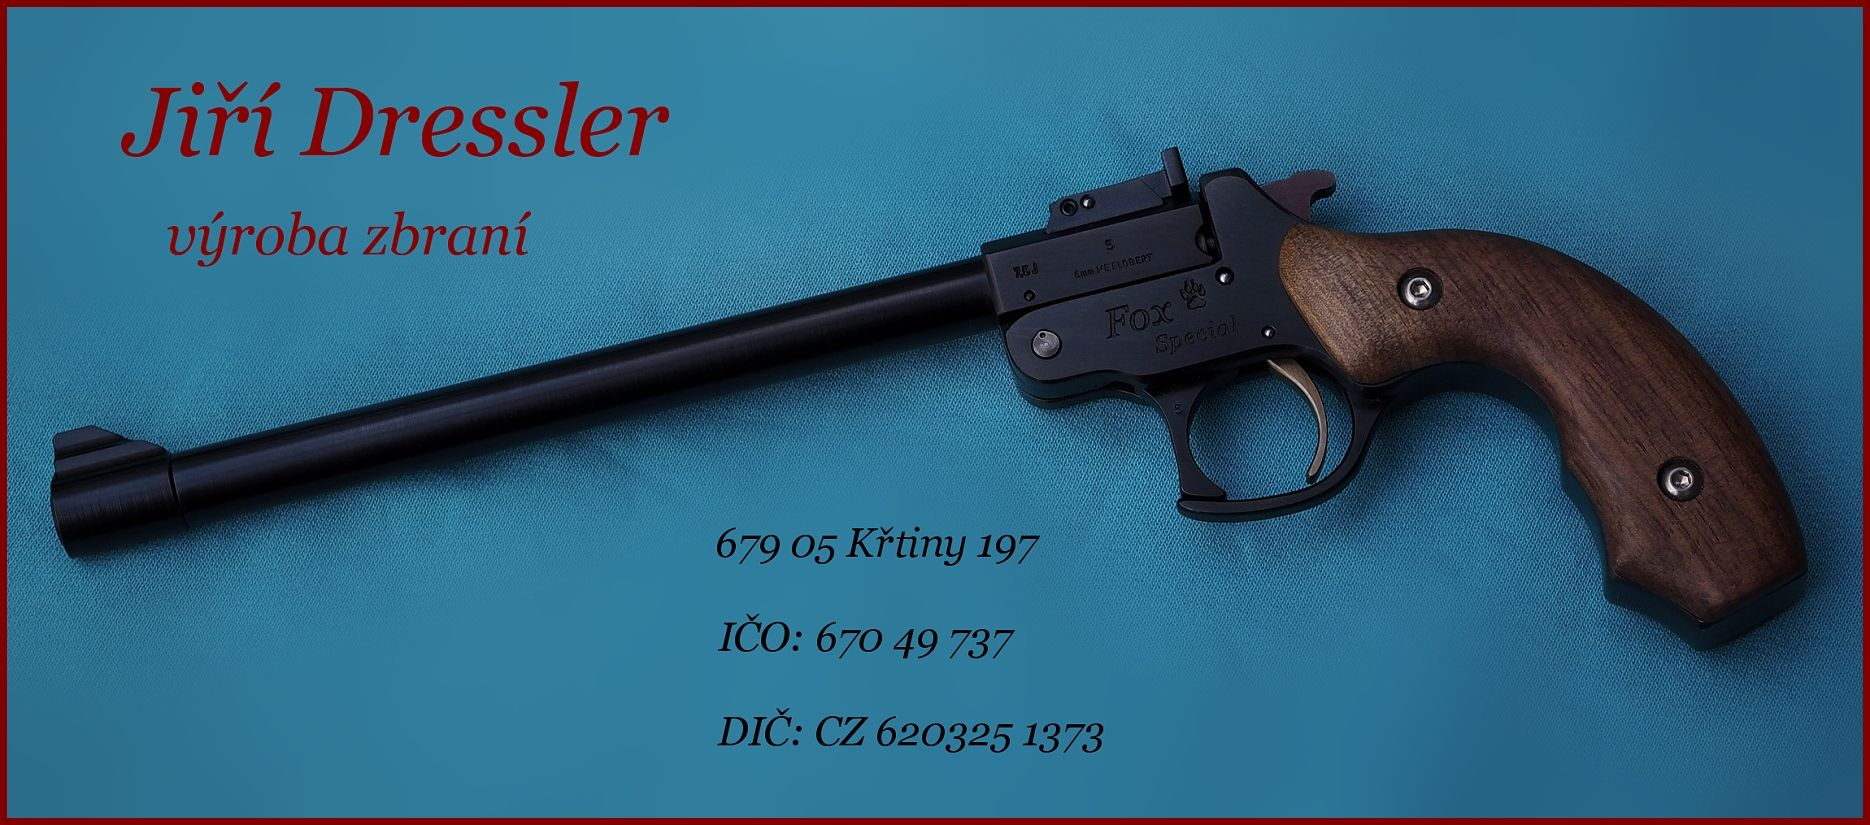 J Dressler - flobert | mini guns | Guns, Hand guns, Firearms